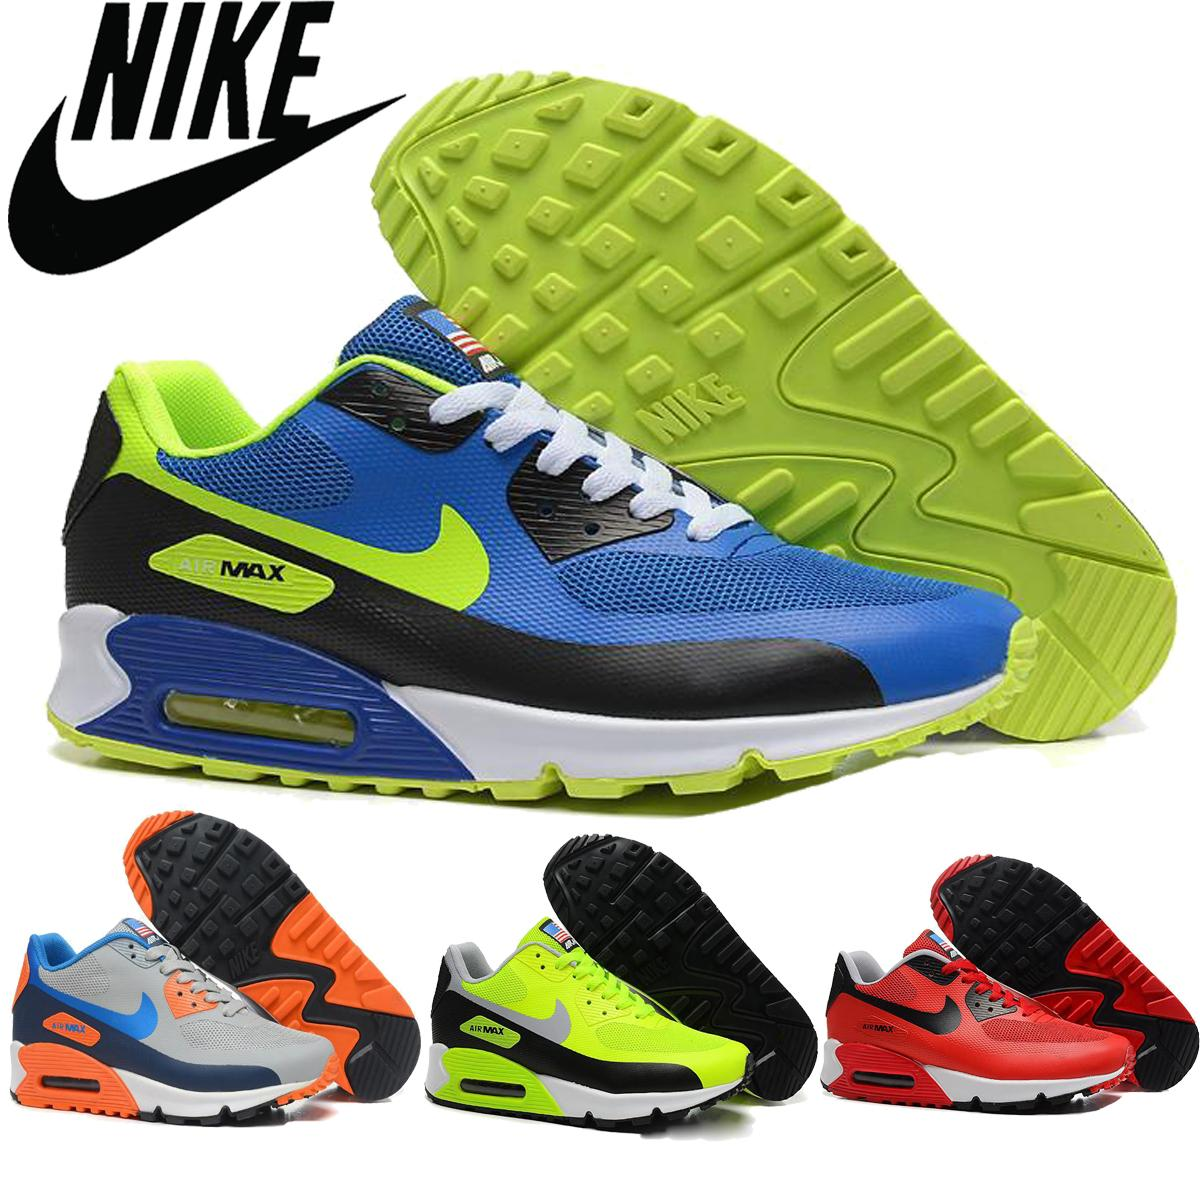 15761bcfae5db0 Nike Air Max 90 Usa Flag Shoes Men 2016 Original Classic Outdoor Athletic  Shoe Airmax Gym